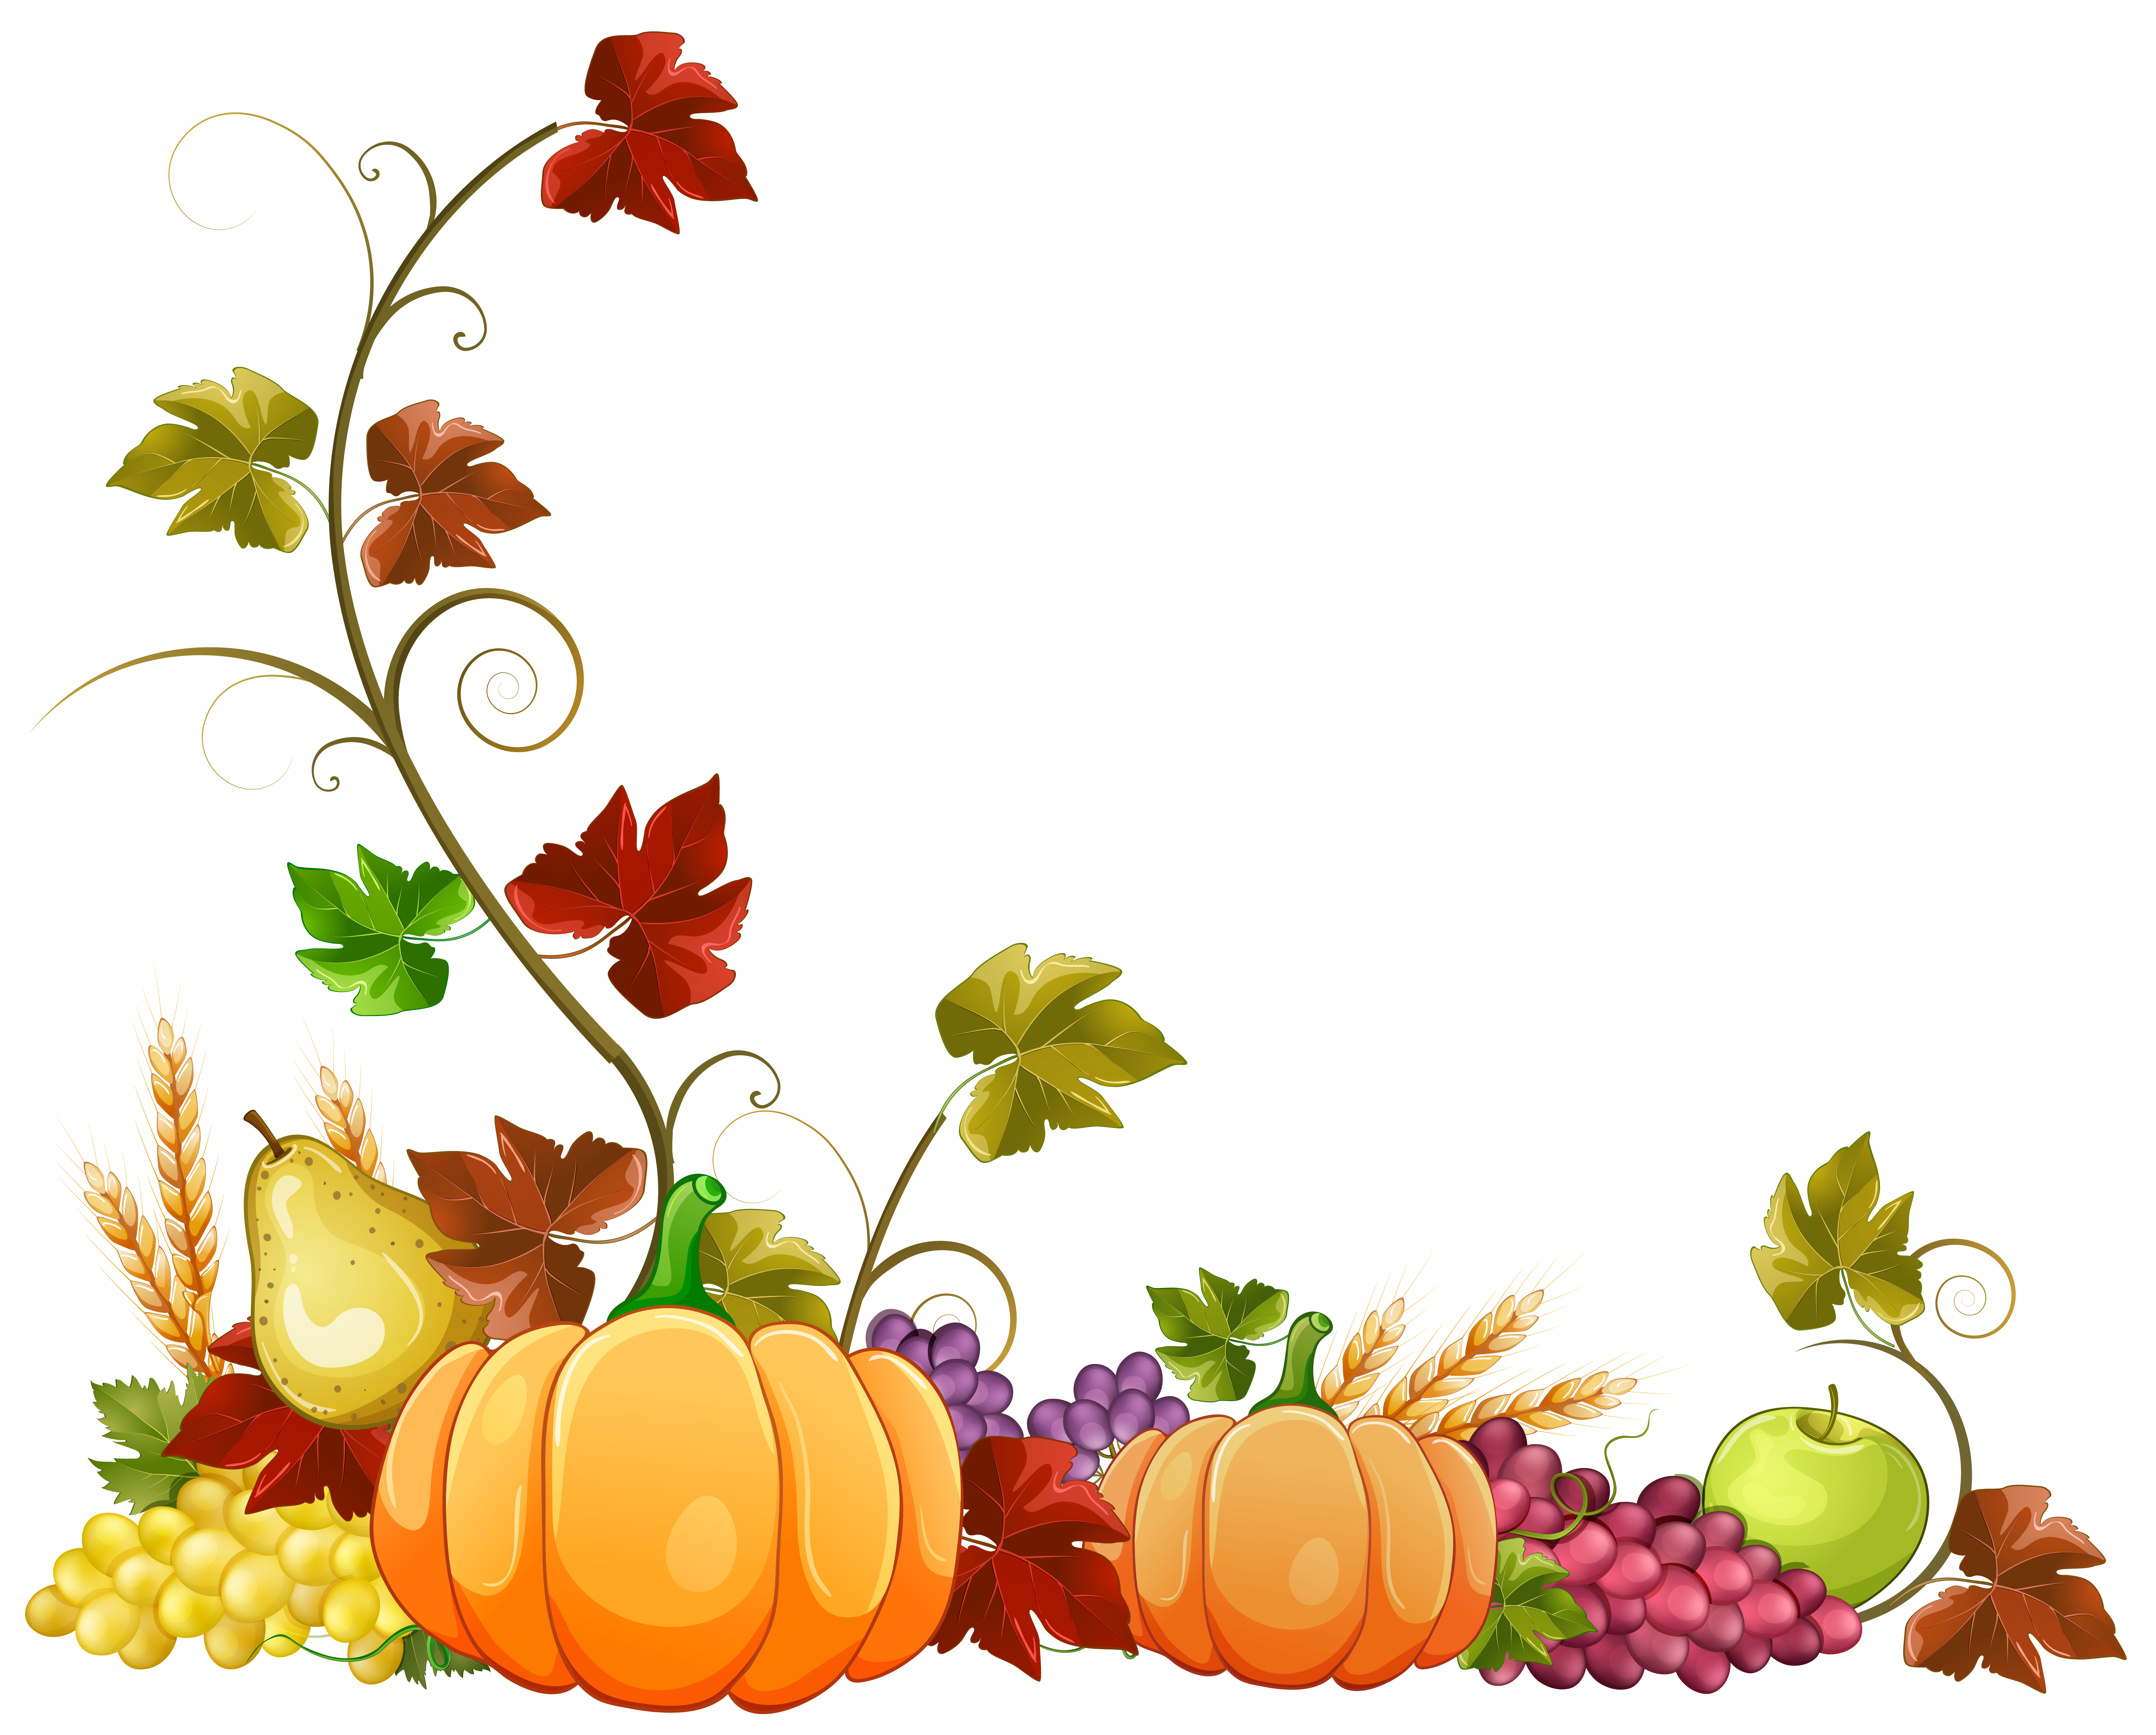 Pin by Joanie Lawrence-Cain on Fall Stuff   Clip art, Fall ...